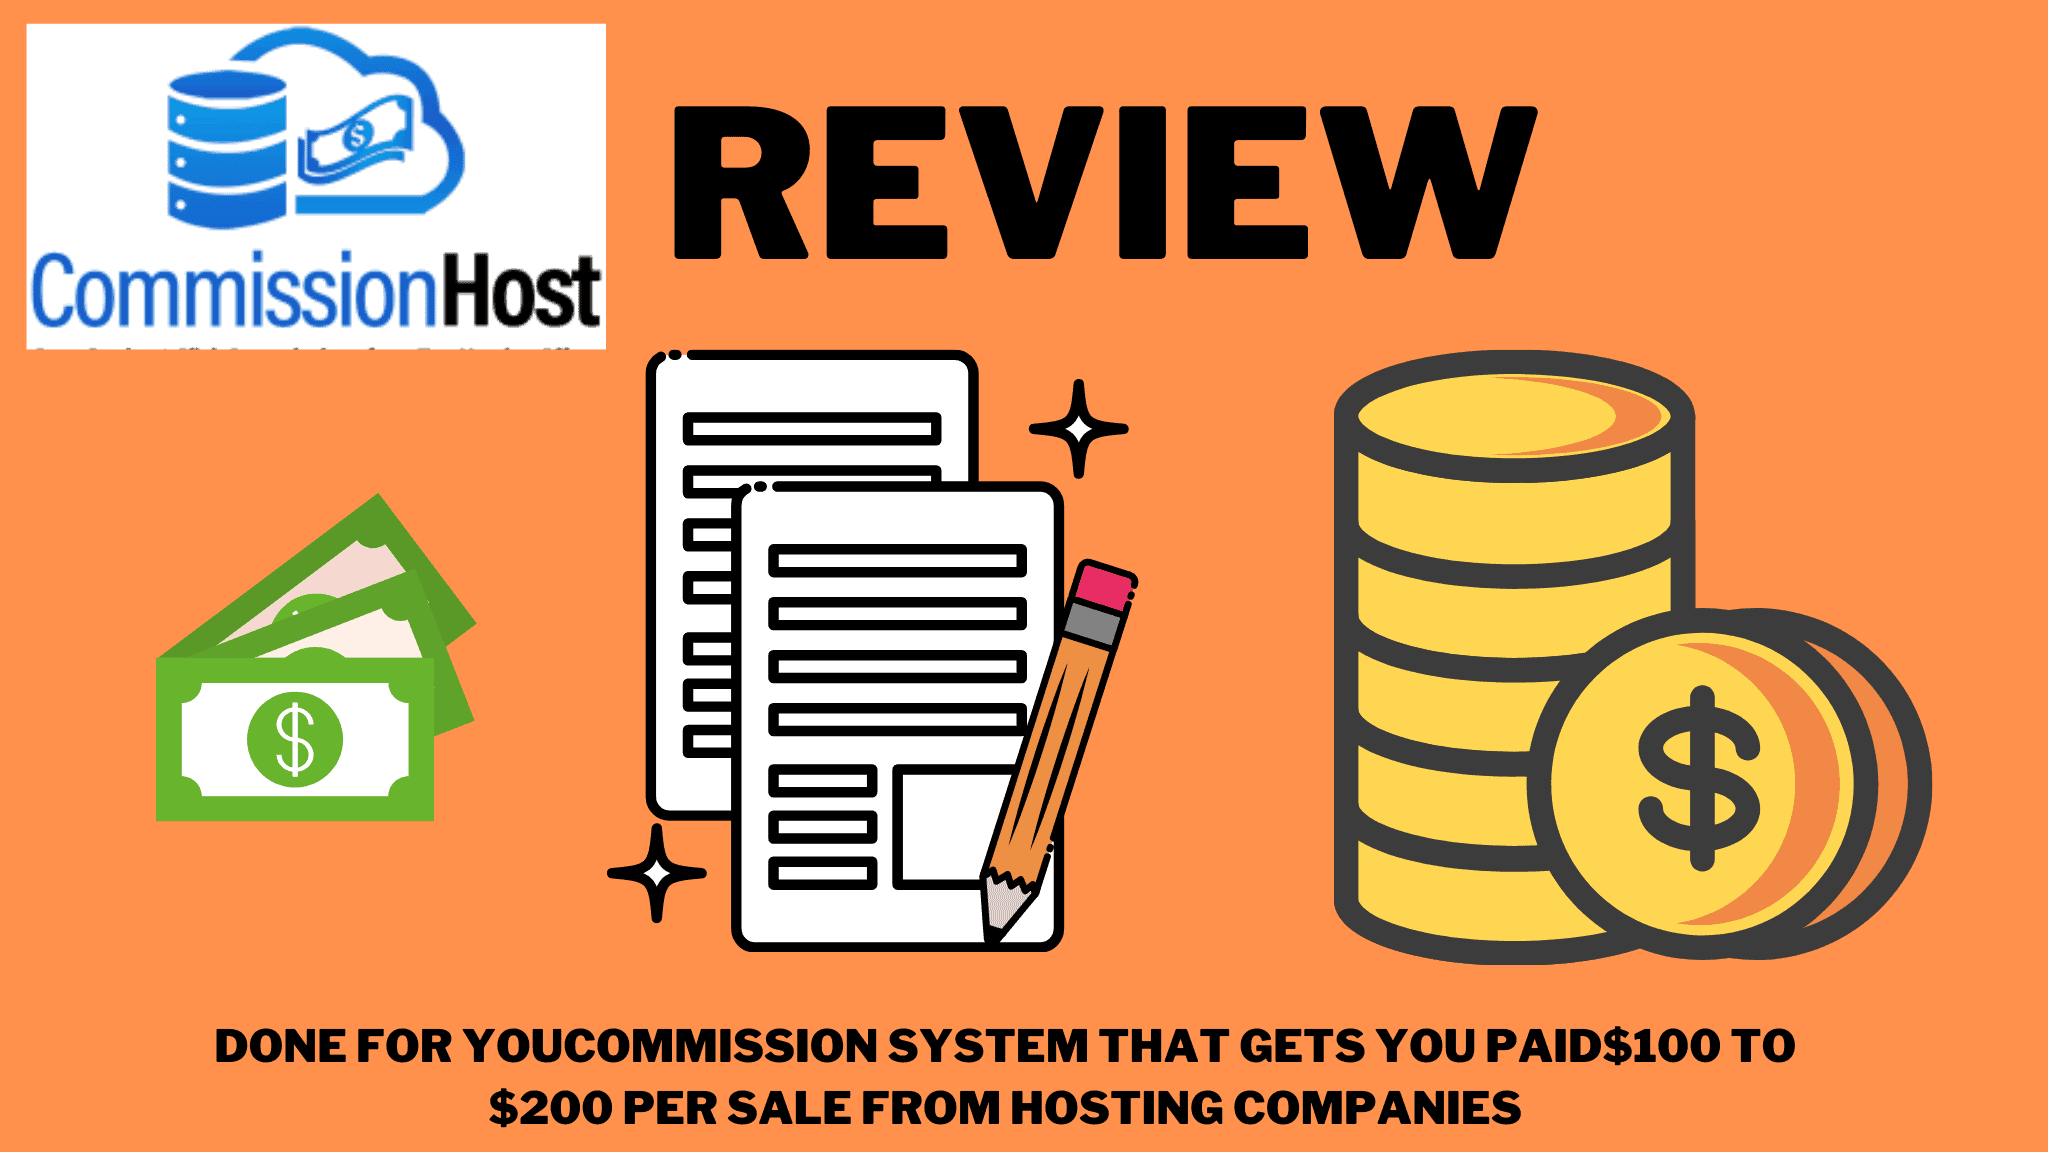 Commission Host Review